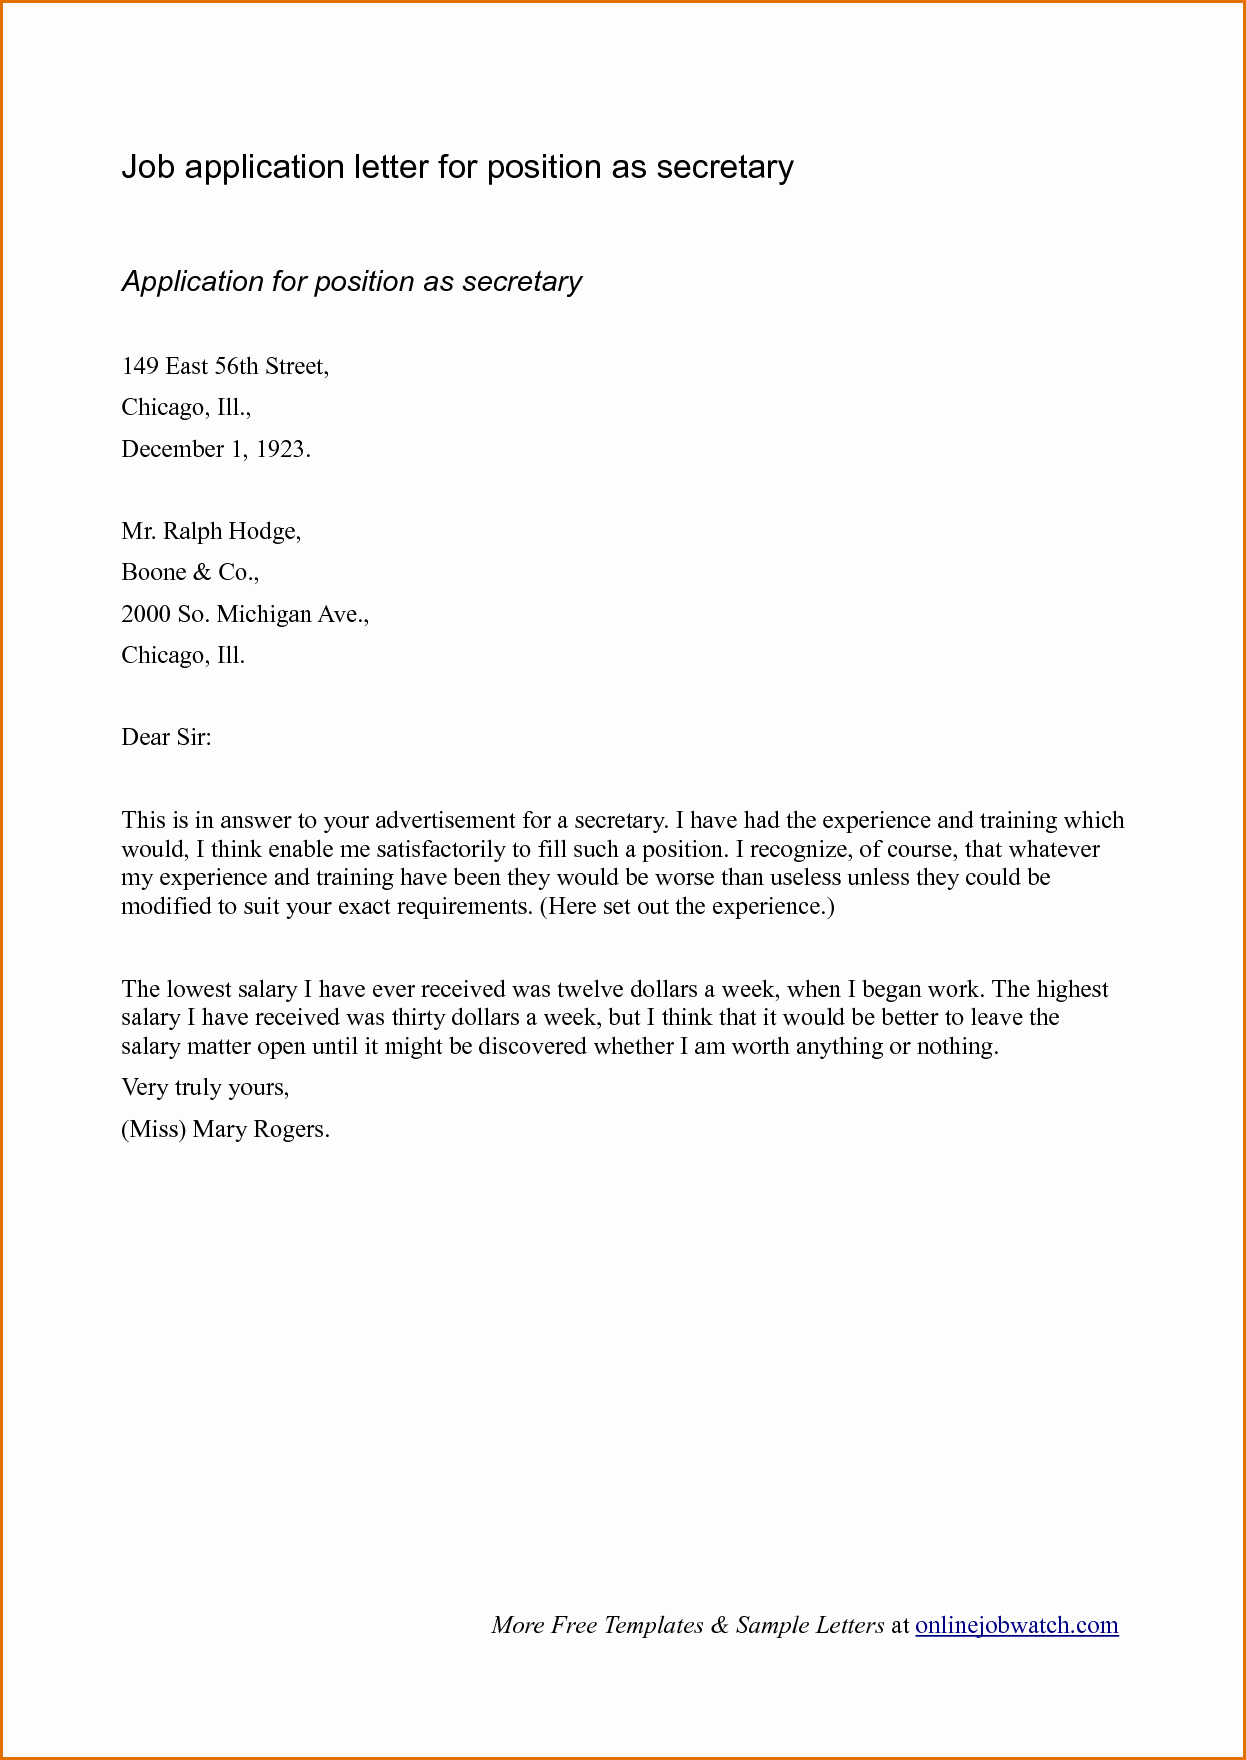 Applying for Jobs Letter Fresh Sample Cover Letter format for Job Application